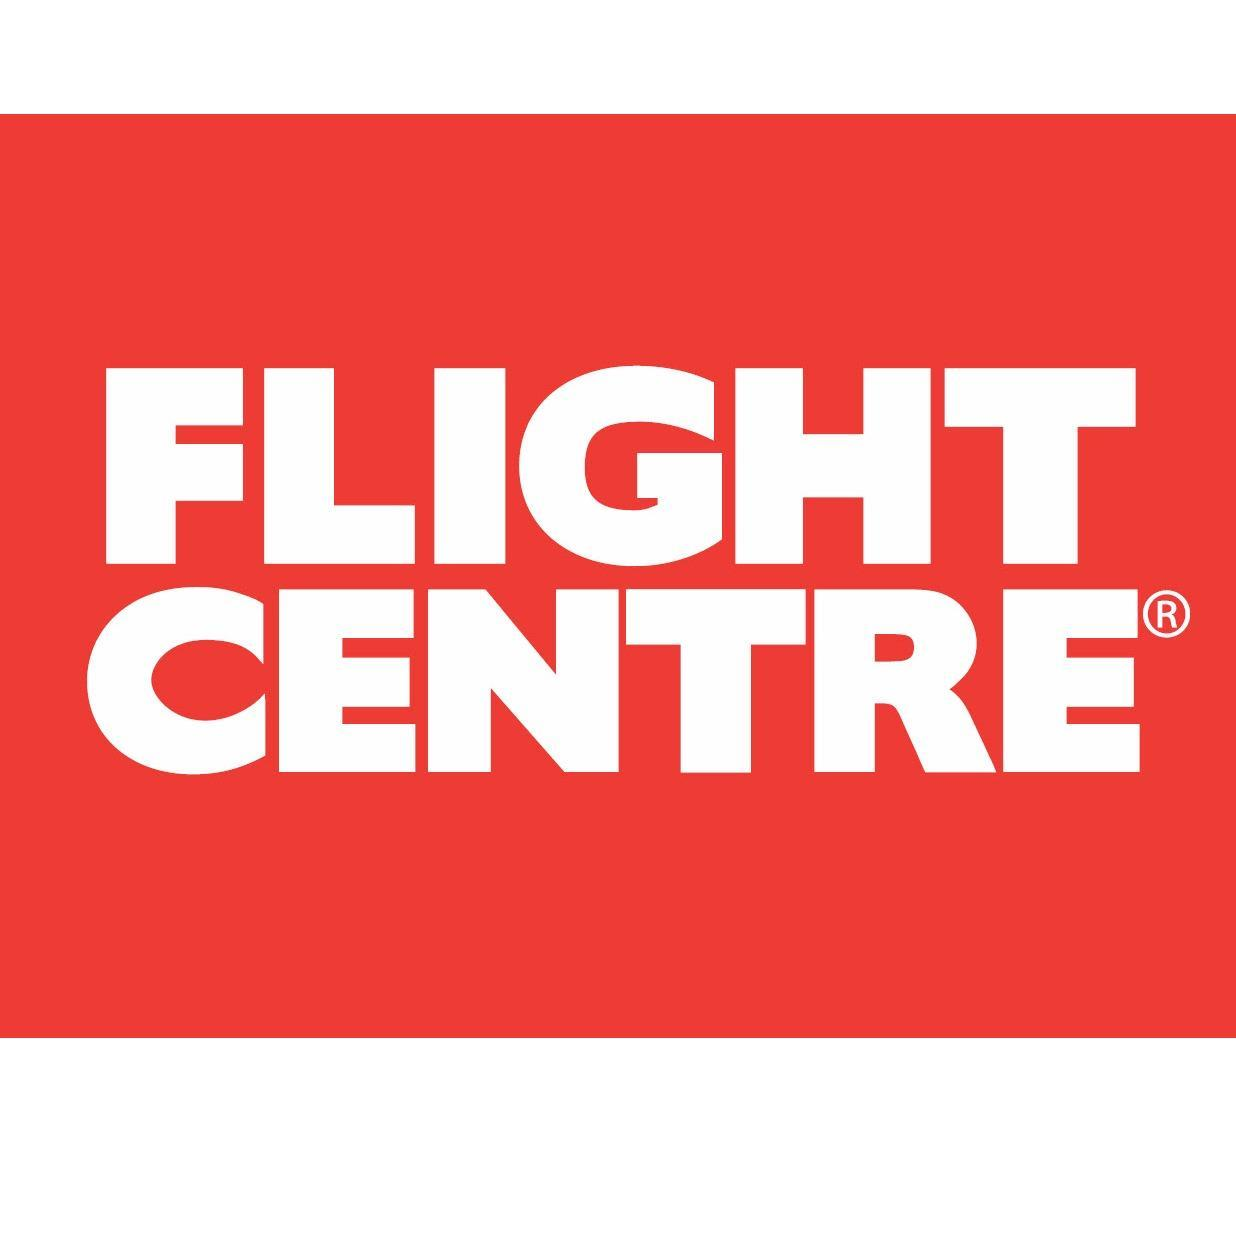 Flight Centre Bristol, High Street - Bristol, Bristol BS1 2AZ - 01173 219165 | ShowMeLocal.com